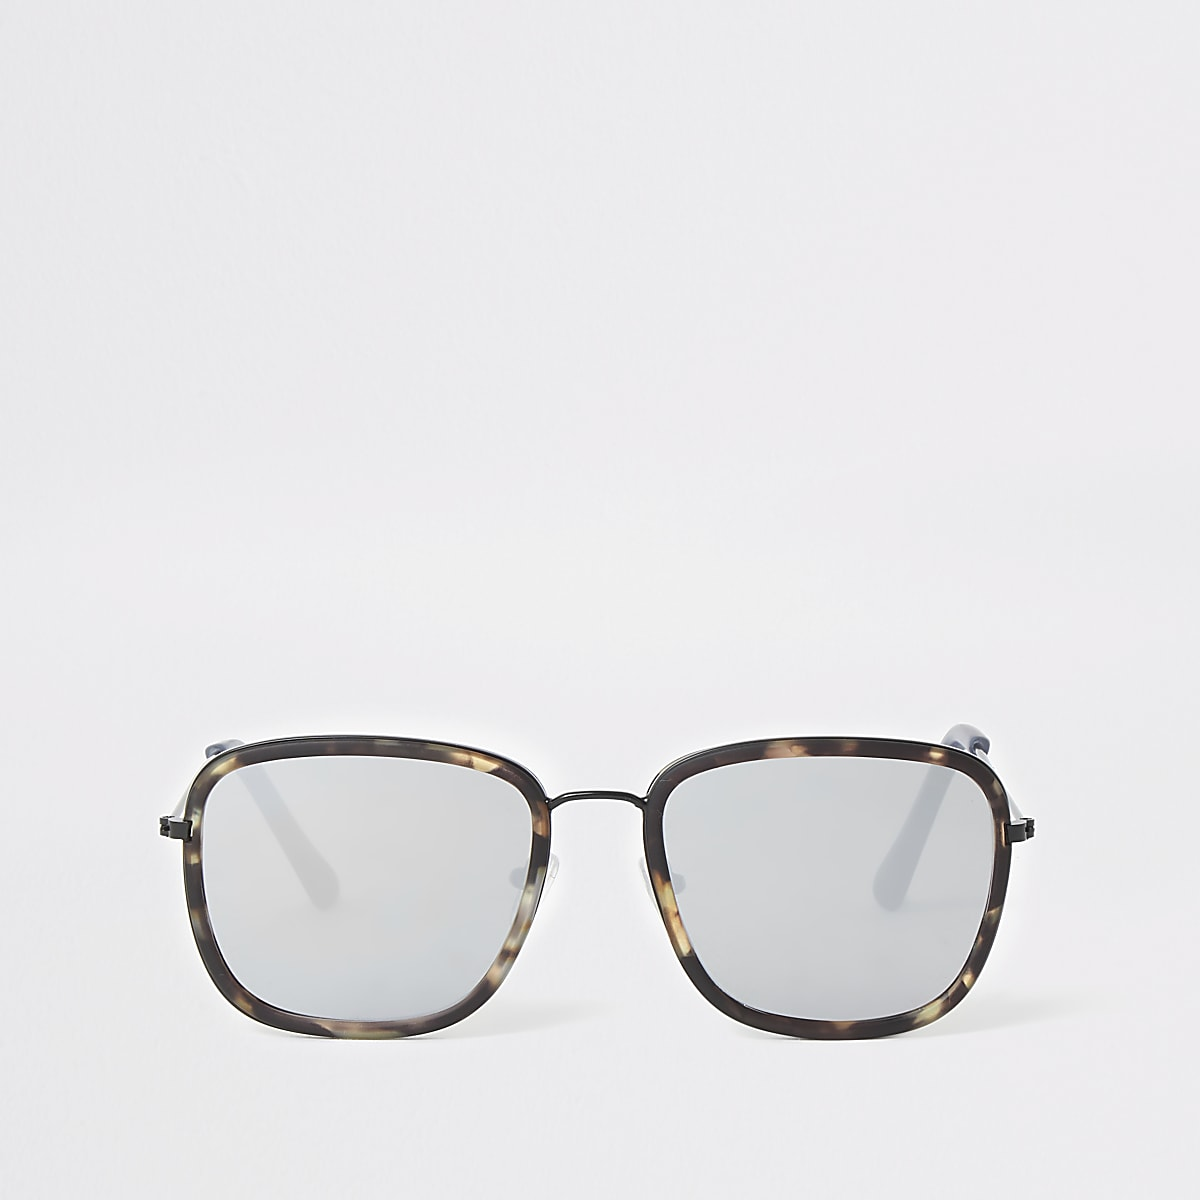 Grey tortoise shell navigator sunglasses